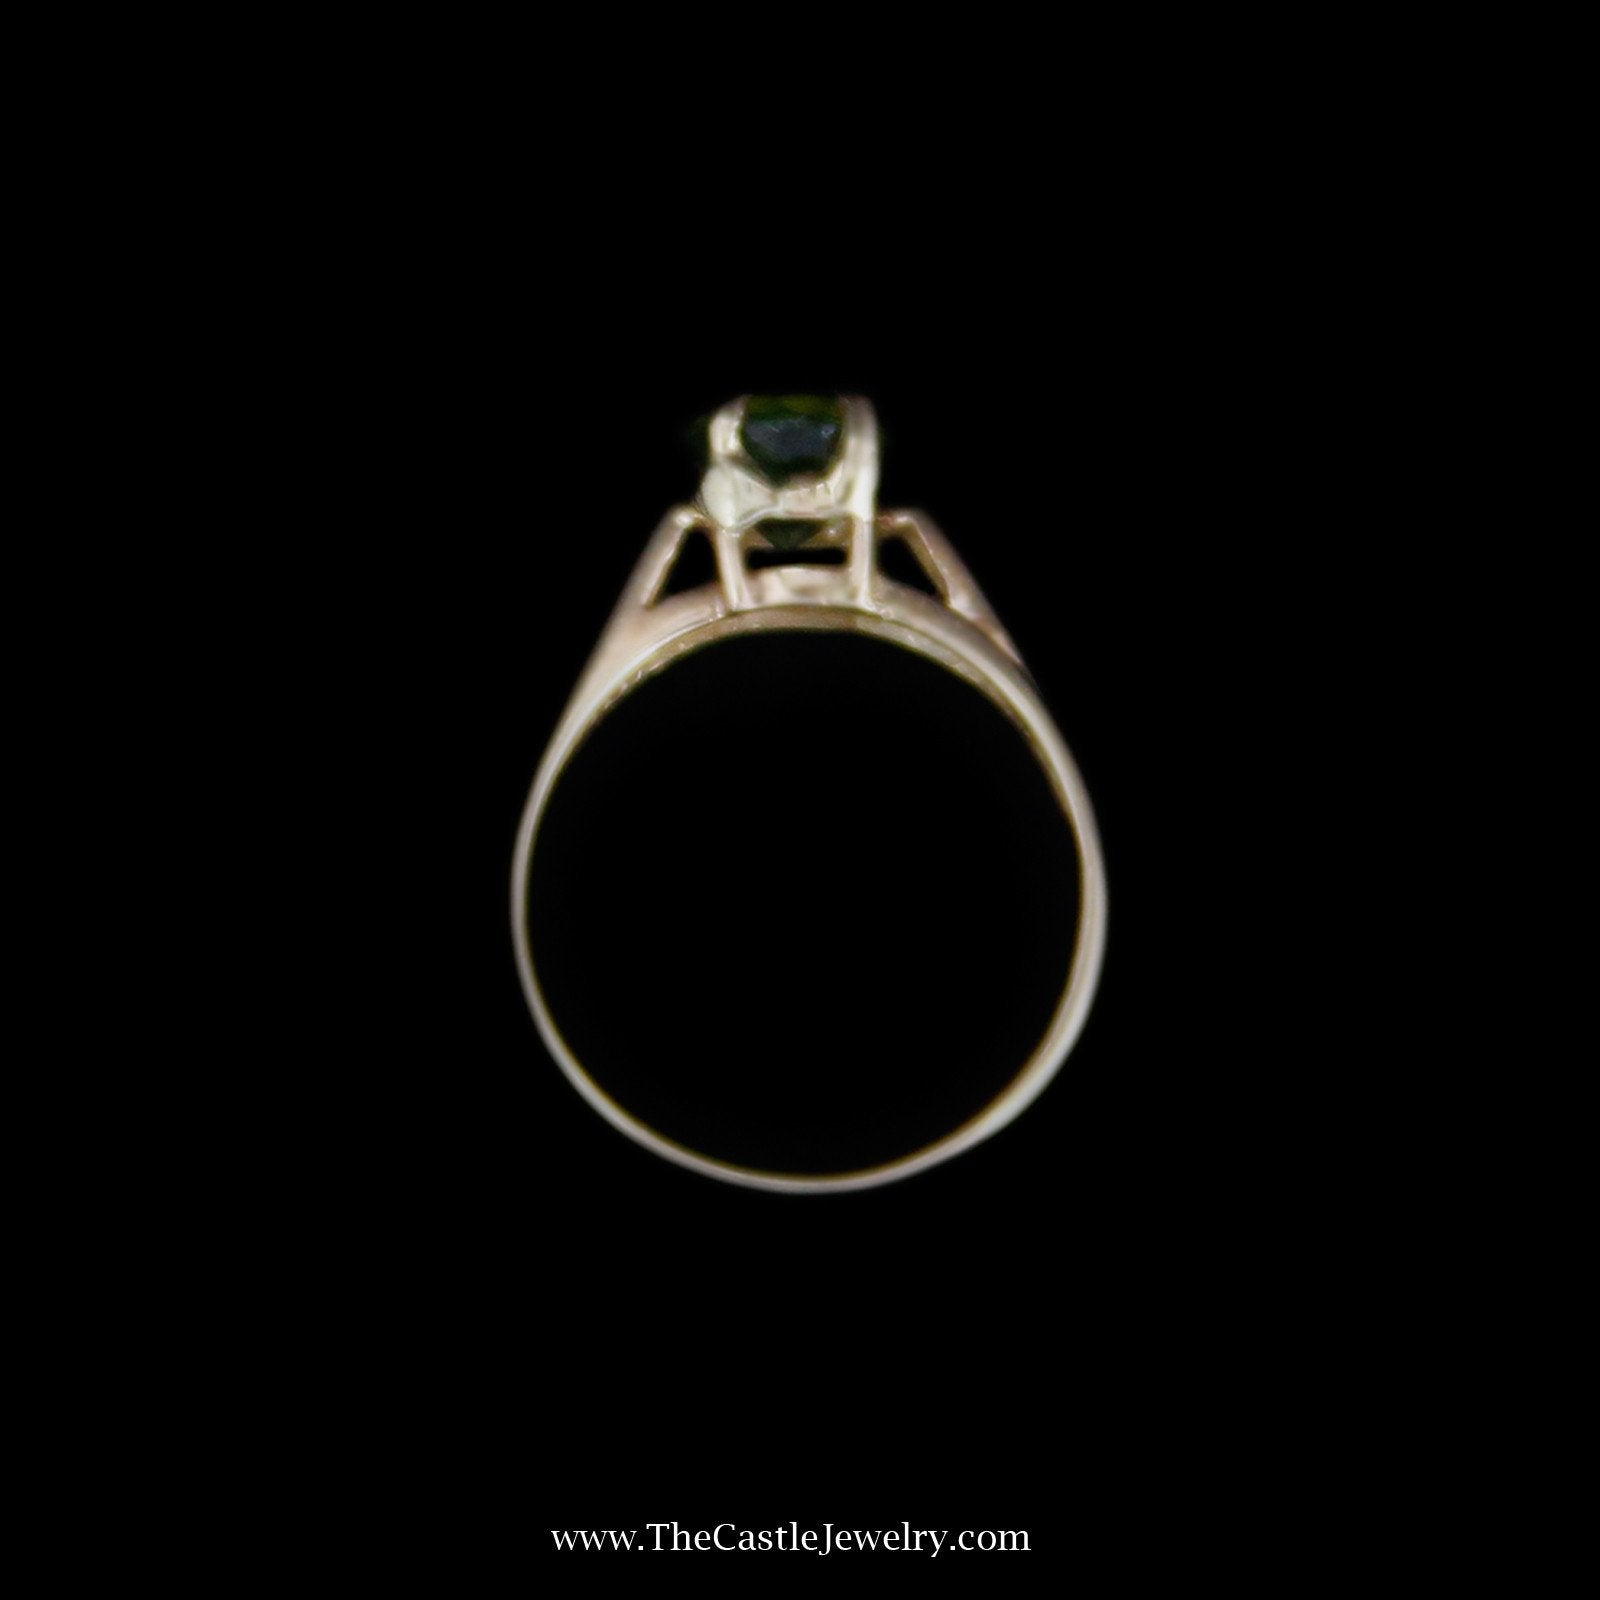 Charming Oval Peridot Solitaire Gemstone Ring in 14k Yellow Gold-1